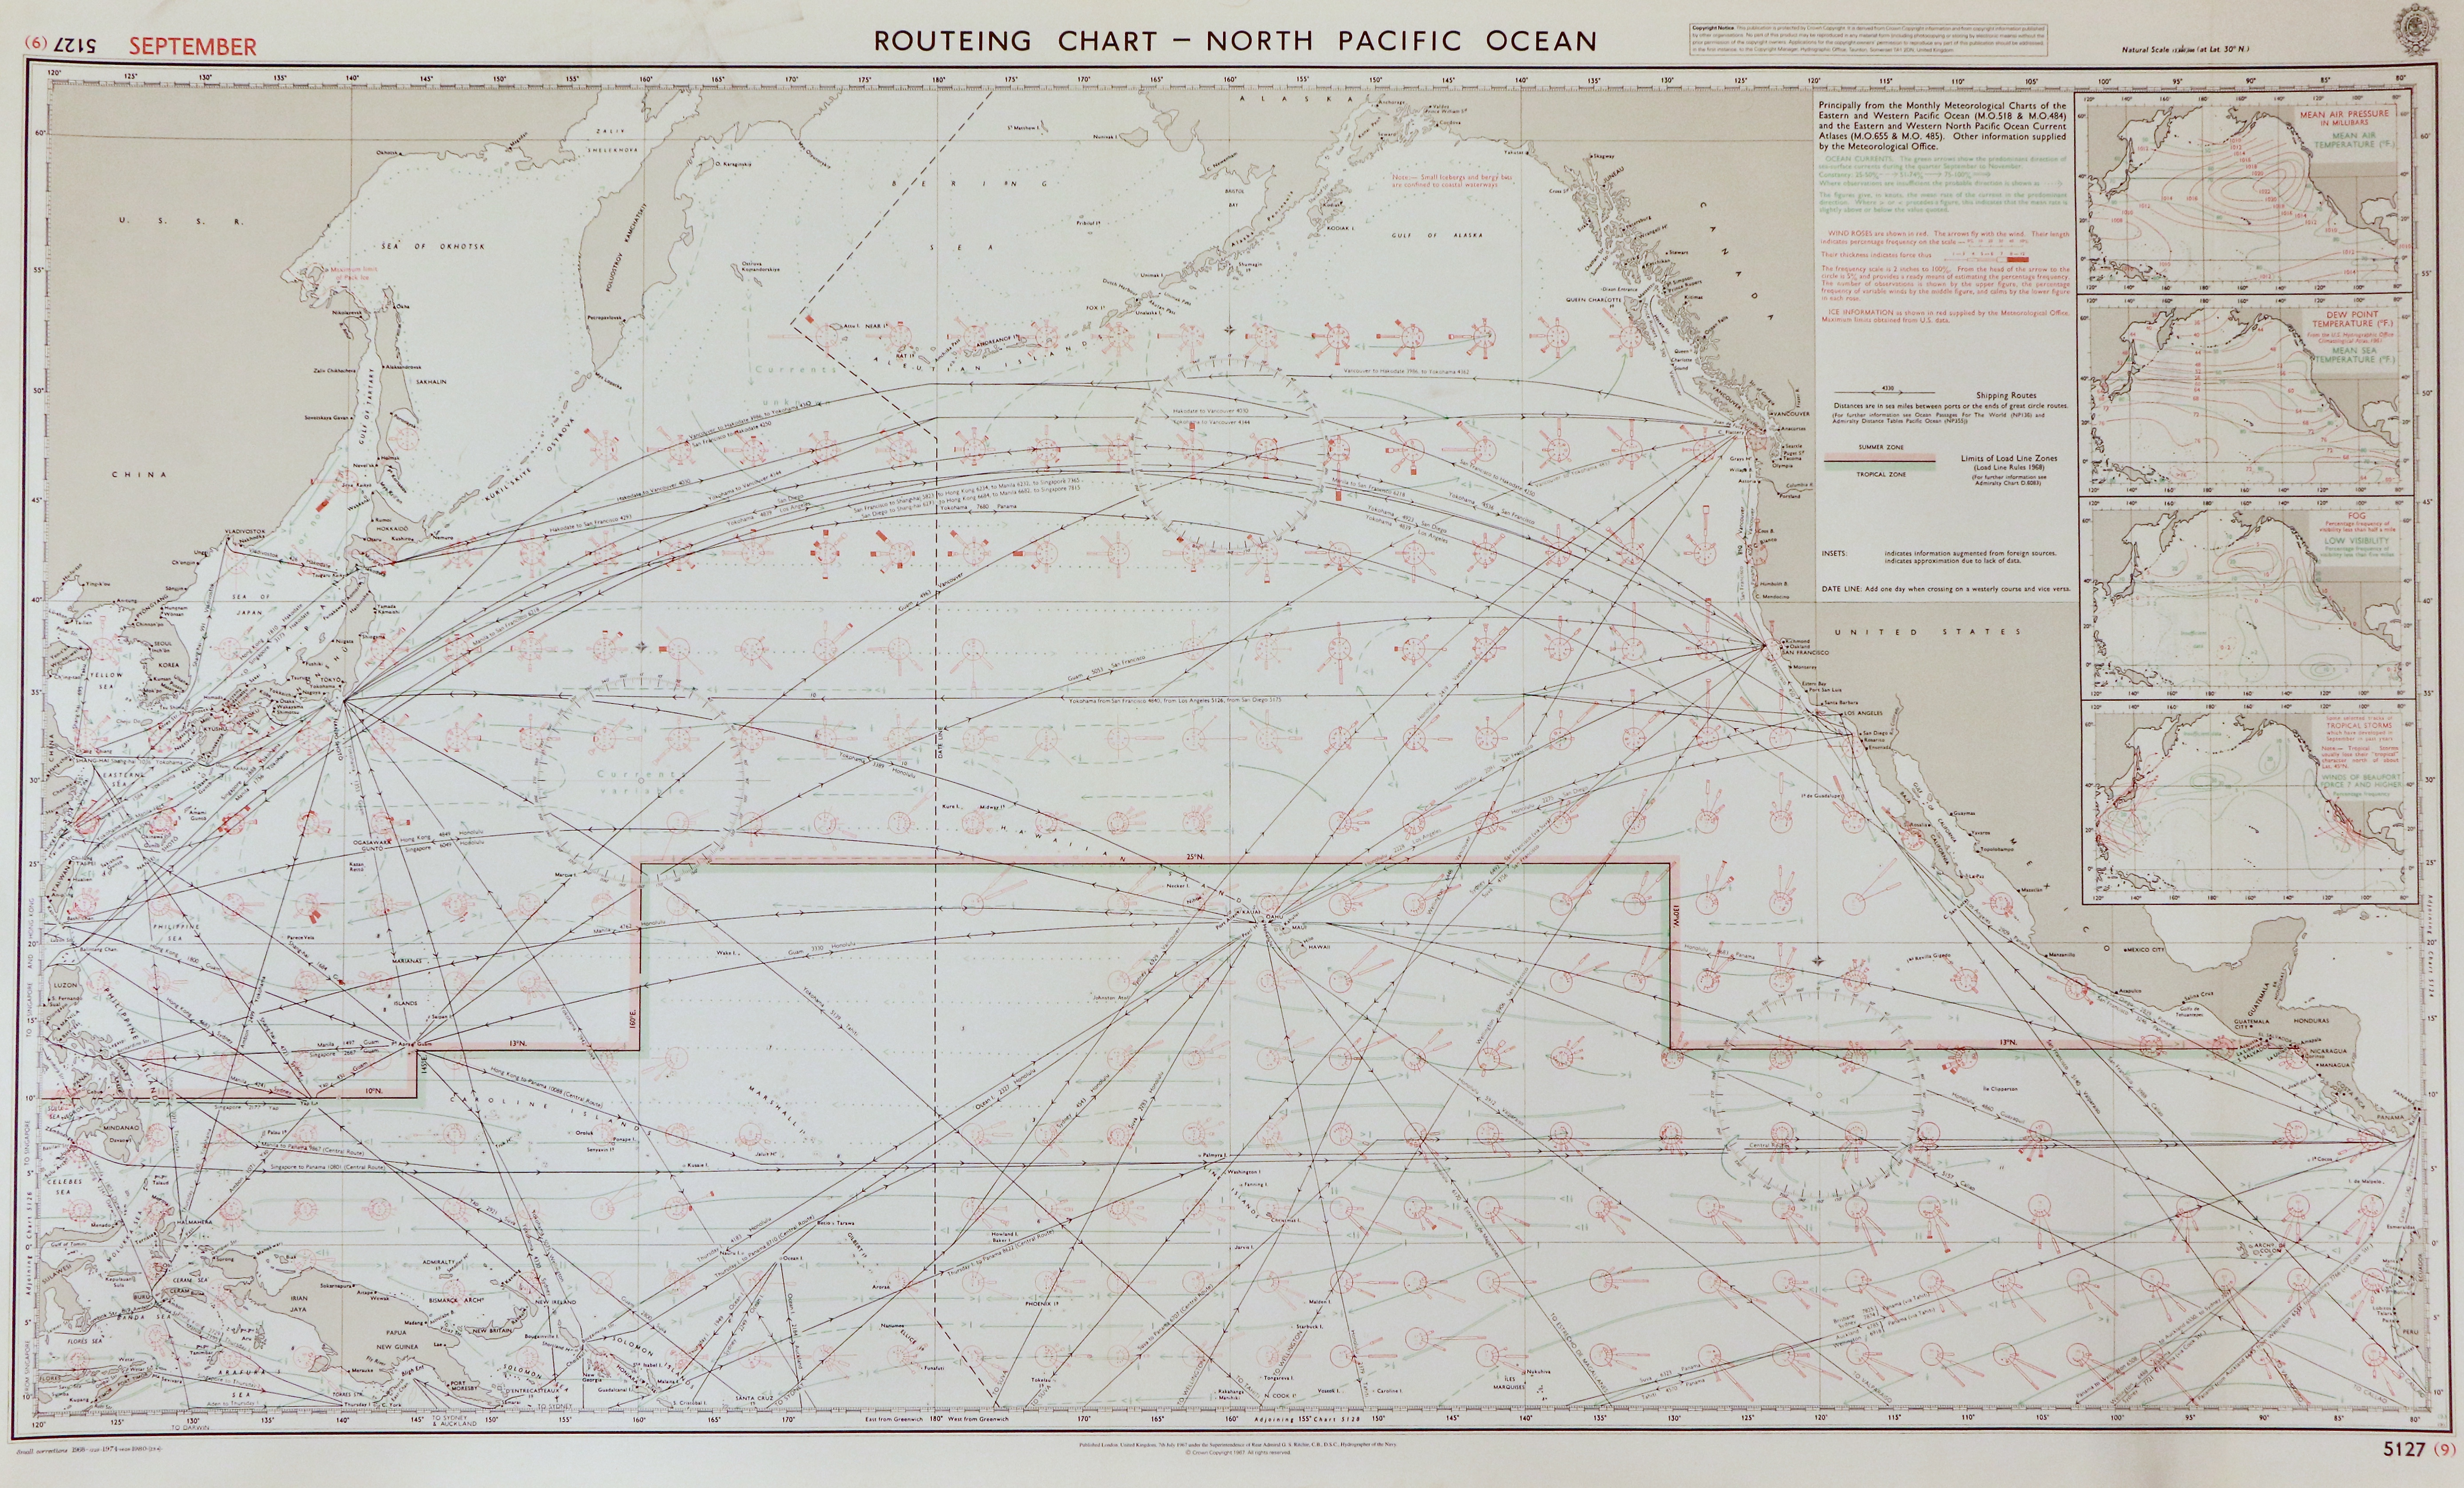 71 - Routeing Chart - North Pacific Ocean (september)